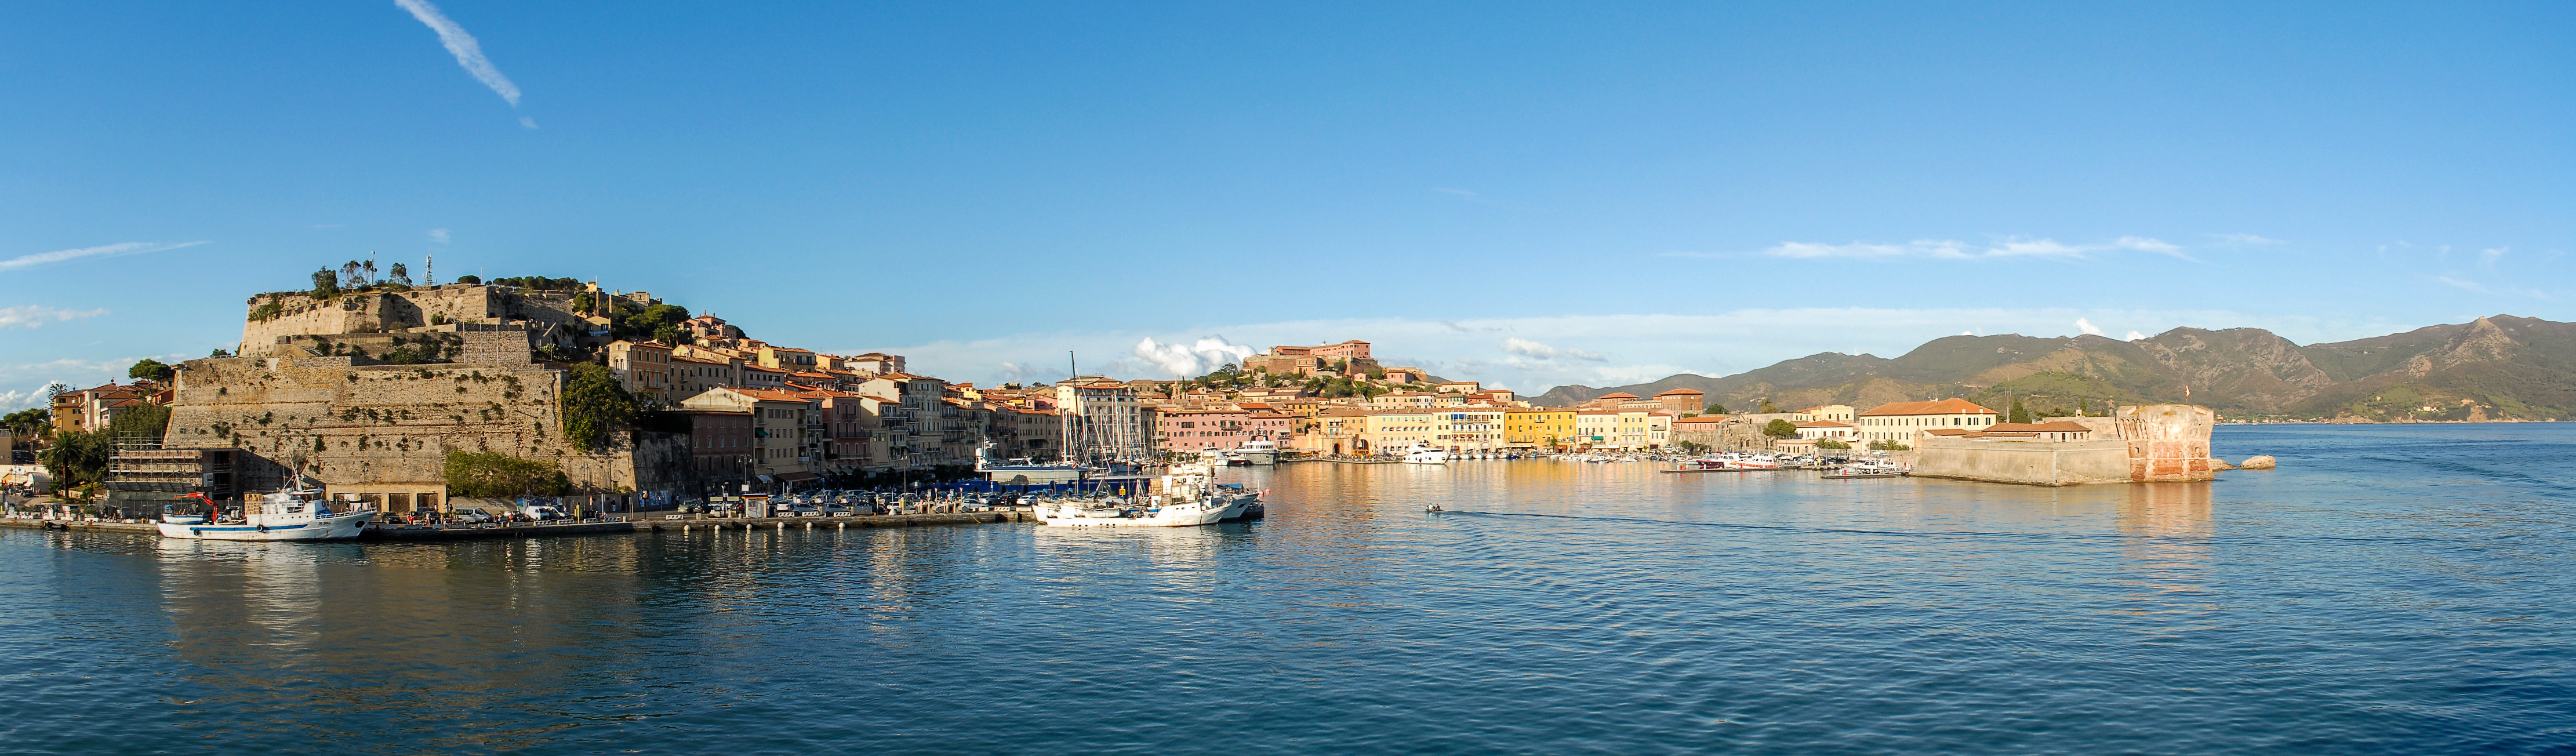 Elba Island Italy  city photos gallery : elba island is one of the most beautiful islands in the mediterranean ...